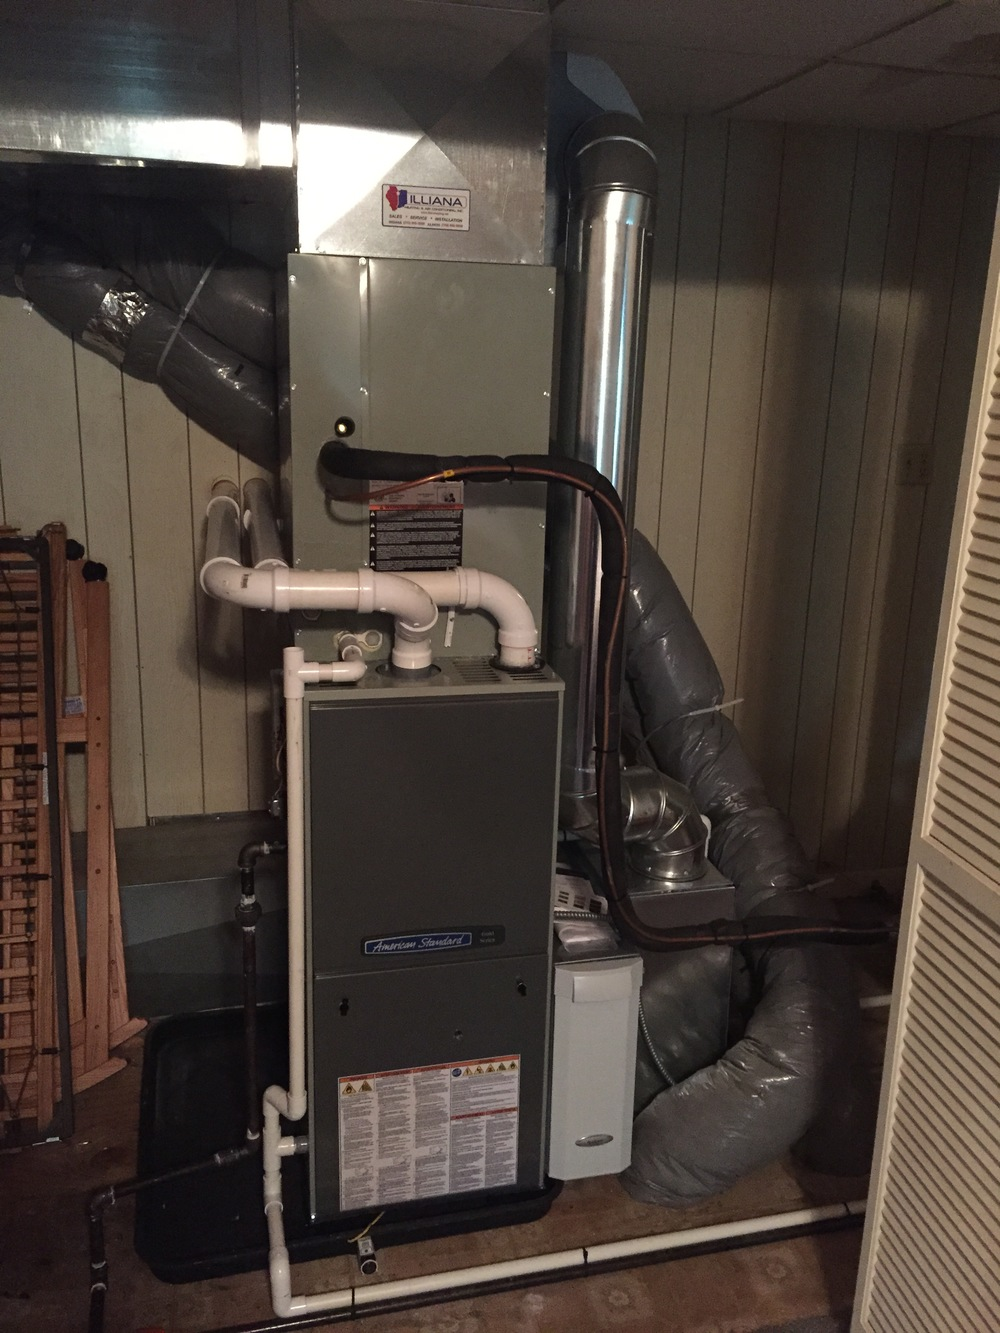 Completed furnace and coil with Air Cleaner and humidifier